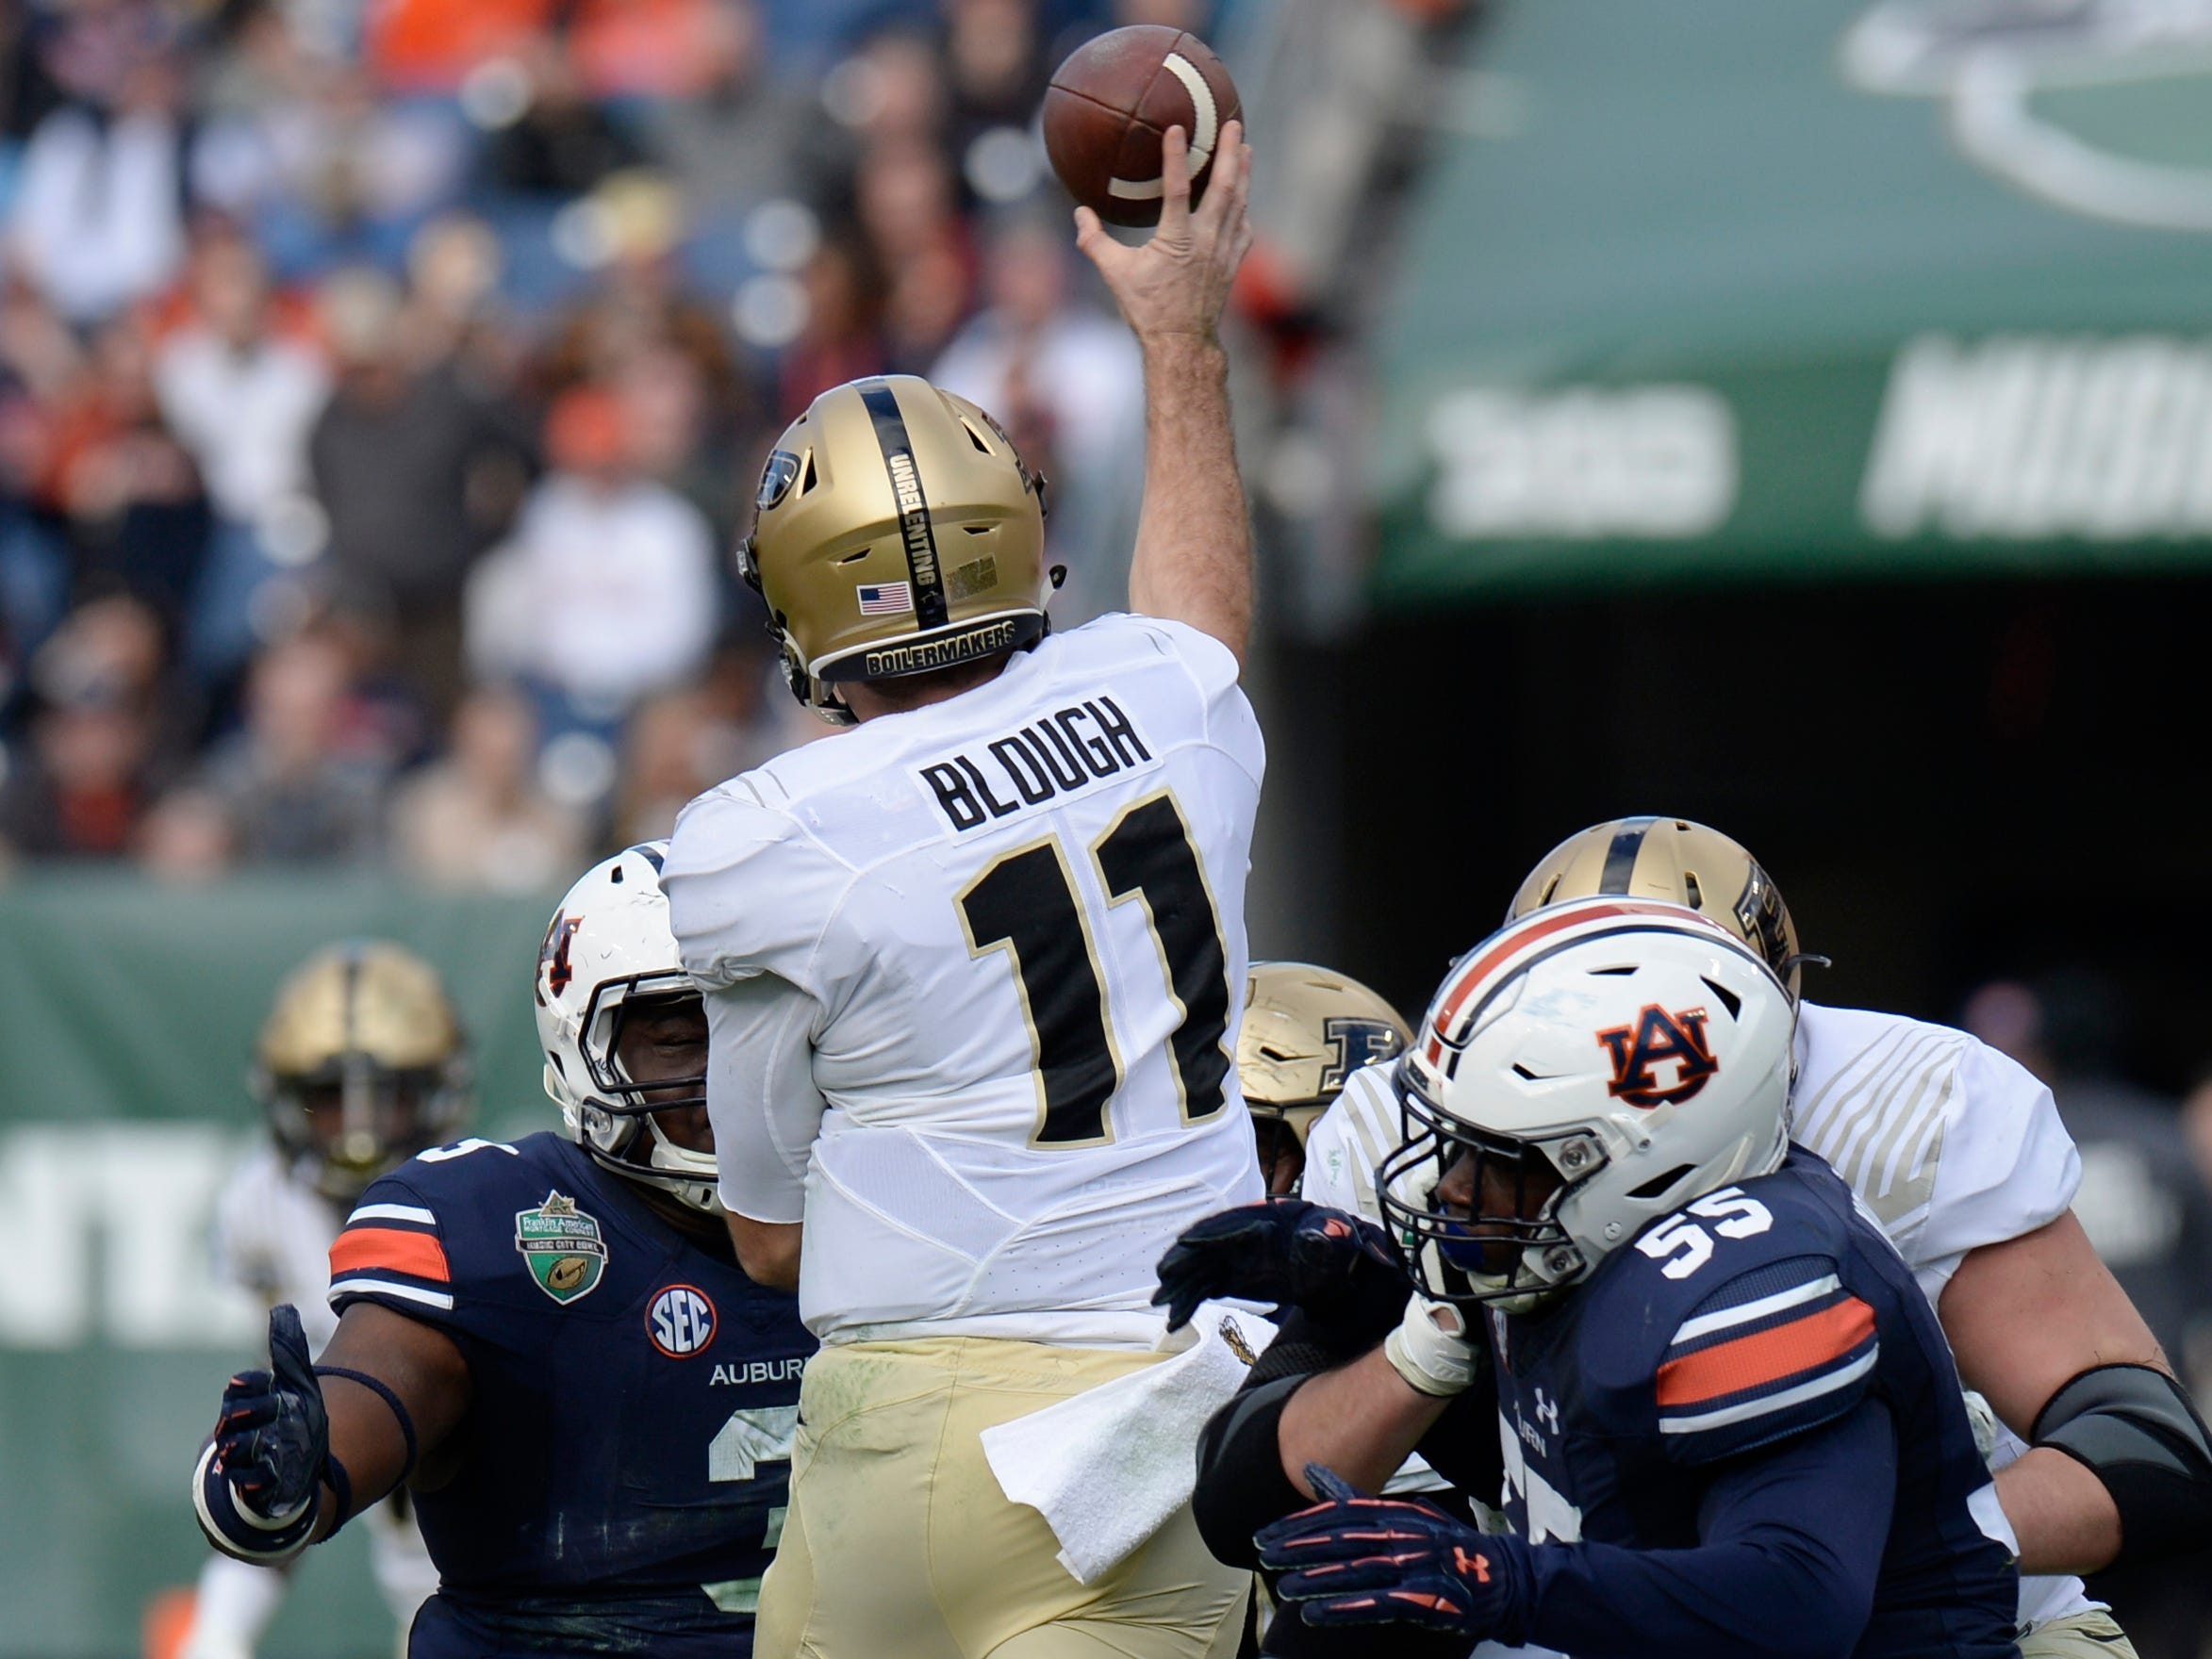 Auburn defenders close in on Purdue quarterback David Blough (11) in the second quarter of the Music City Bowl NCAA college football game Friday, Dec. 28, 2018, at Nissan Stadium in Nashville, Tenn.